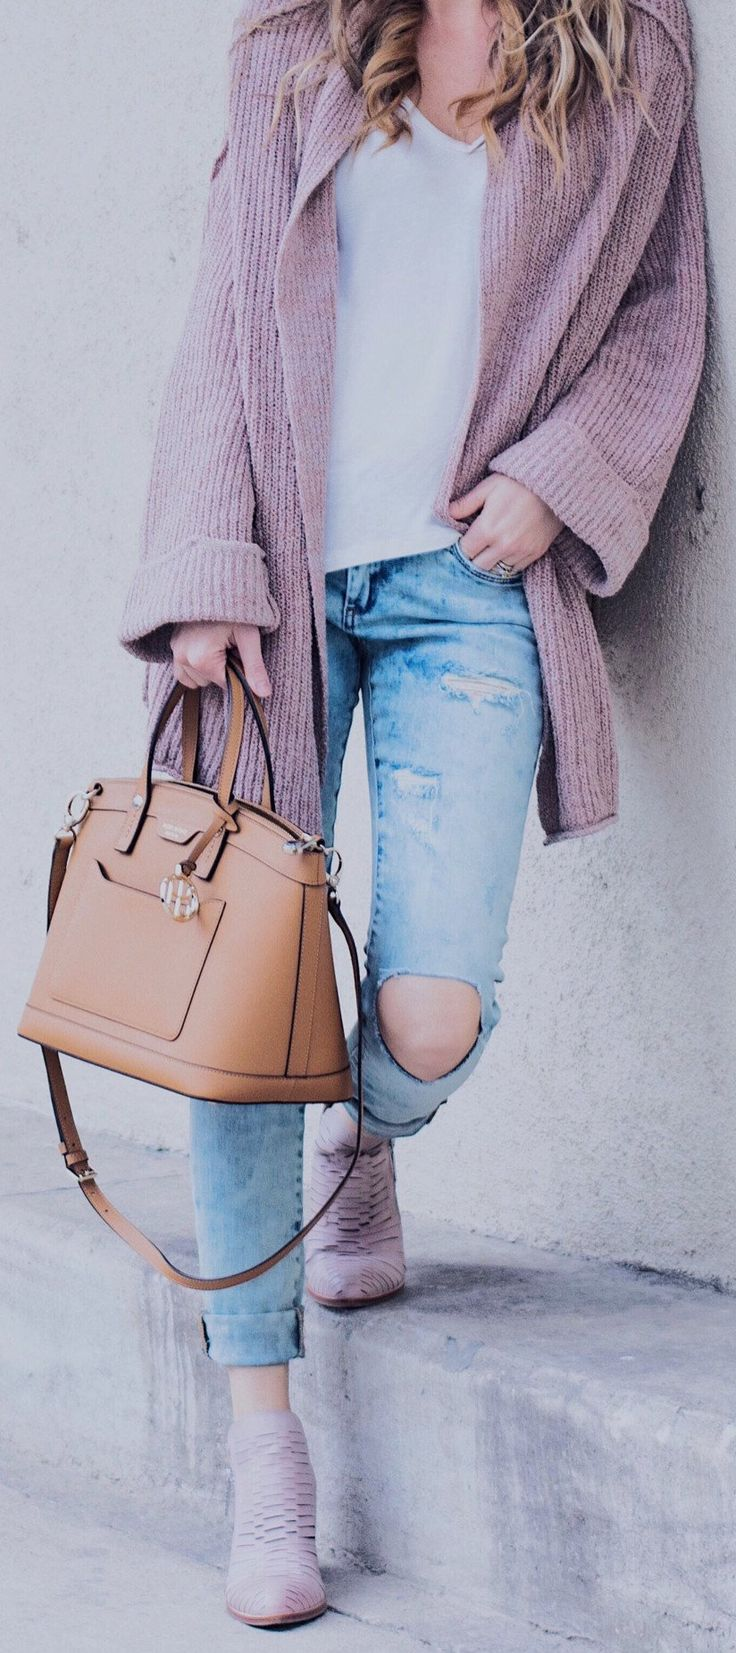 #winter #outfits /  Purple Cardigan / White Cami / Camel Leather Tote Bag / Purple Booties